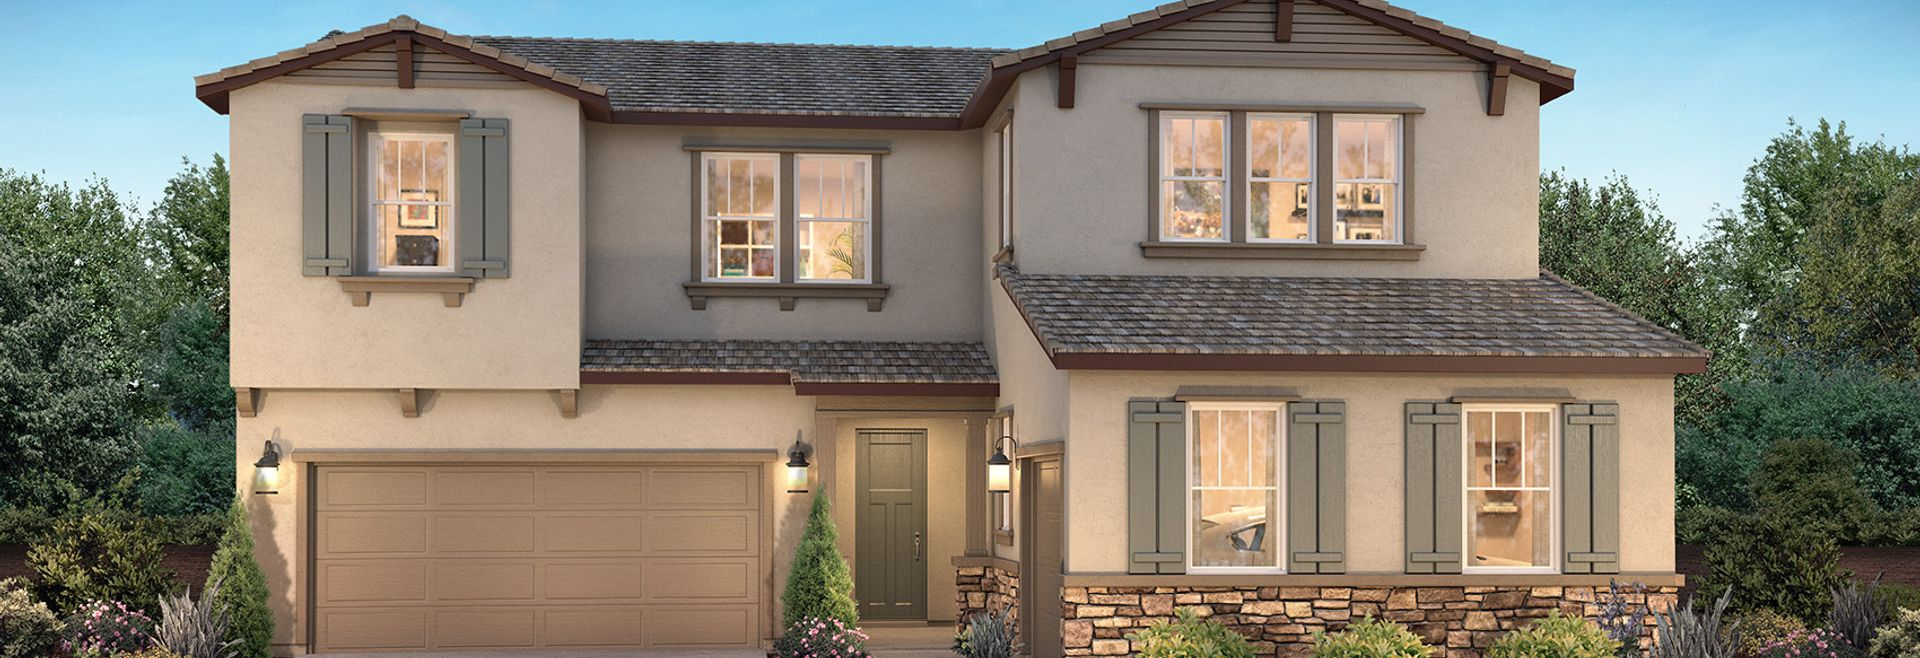 Vente at Tracy Hills by Shea Homes